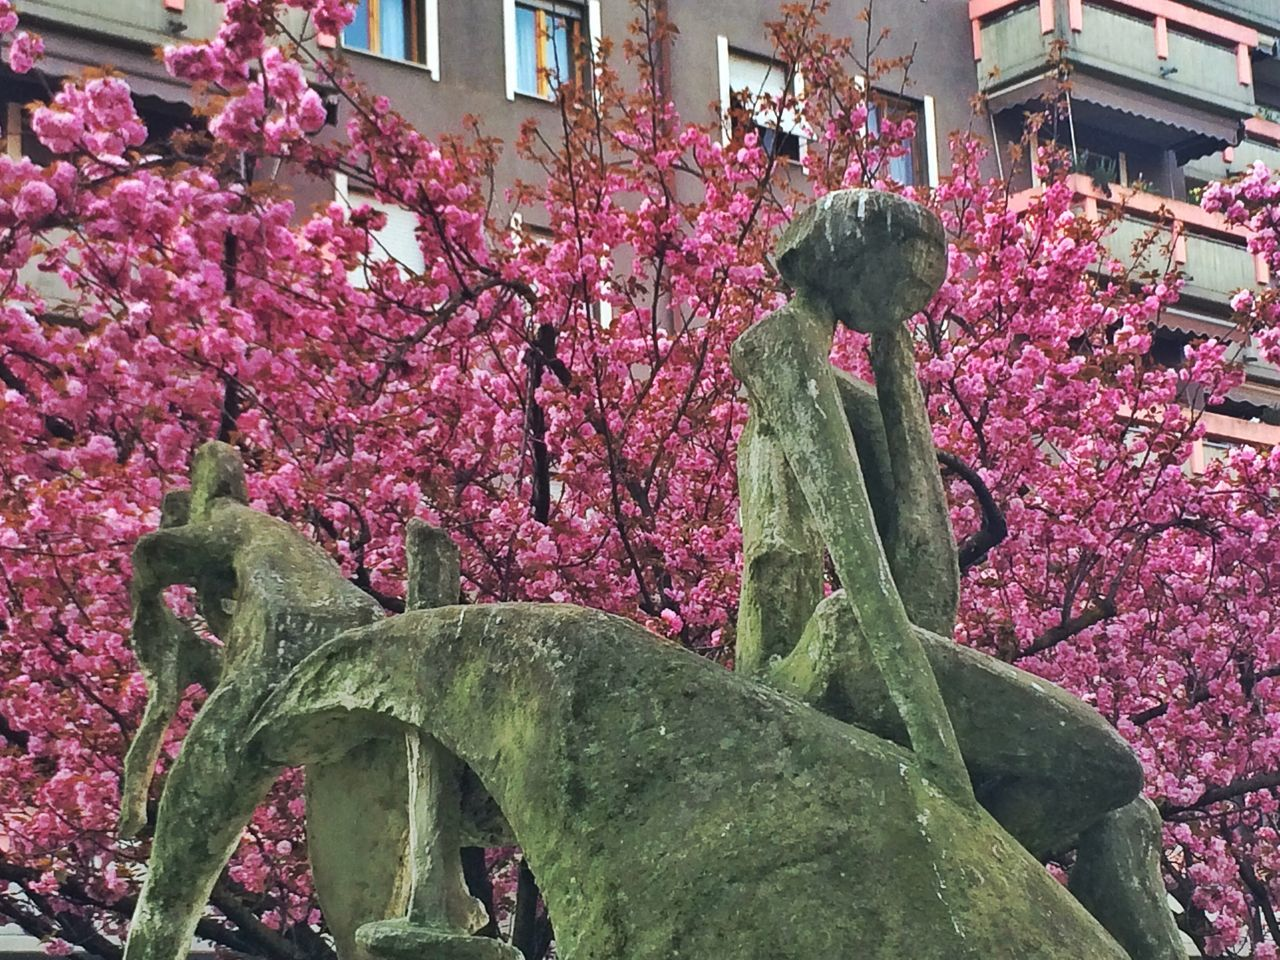 Nature_collection Urban Nature Spring Springtime Home Pink Flower Spring Flowers Building Pink Spring Has Arrived